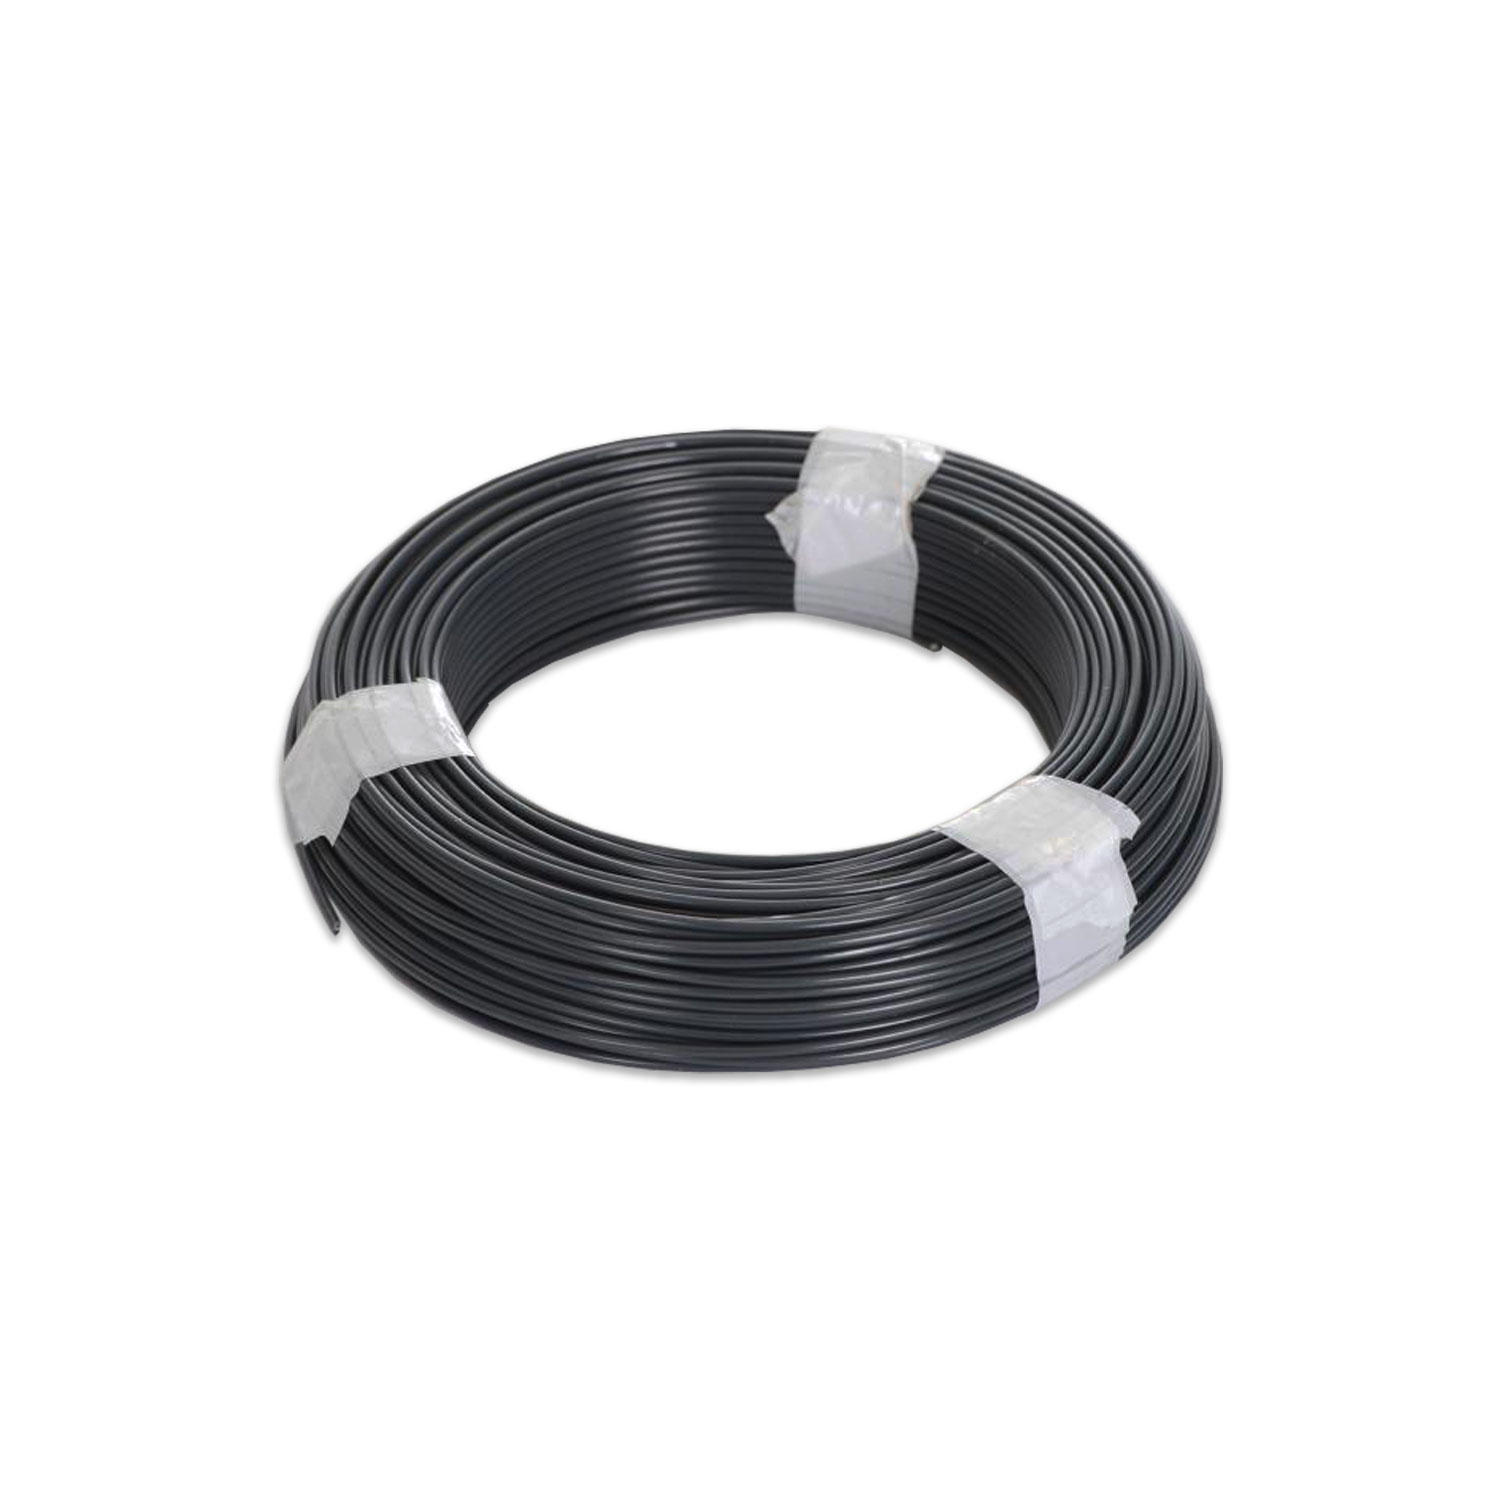 Fil de tension plastifié - Ø 2,7 mm / 3,1 mm - Lg. 100 m